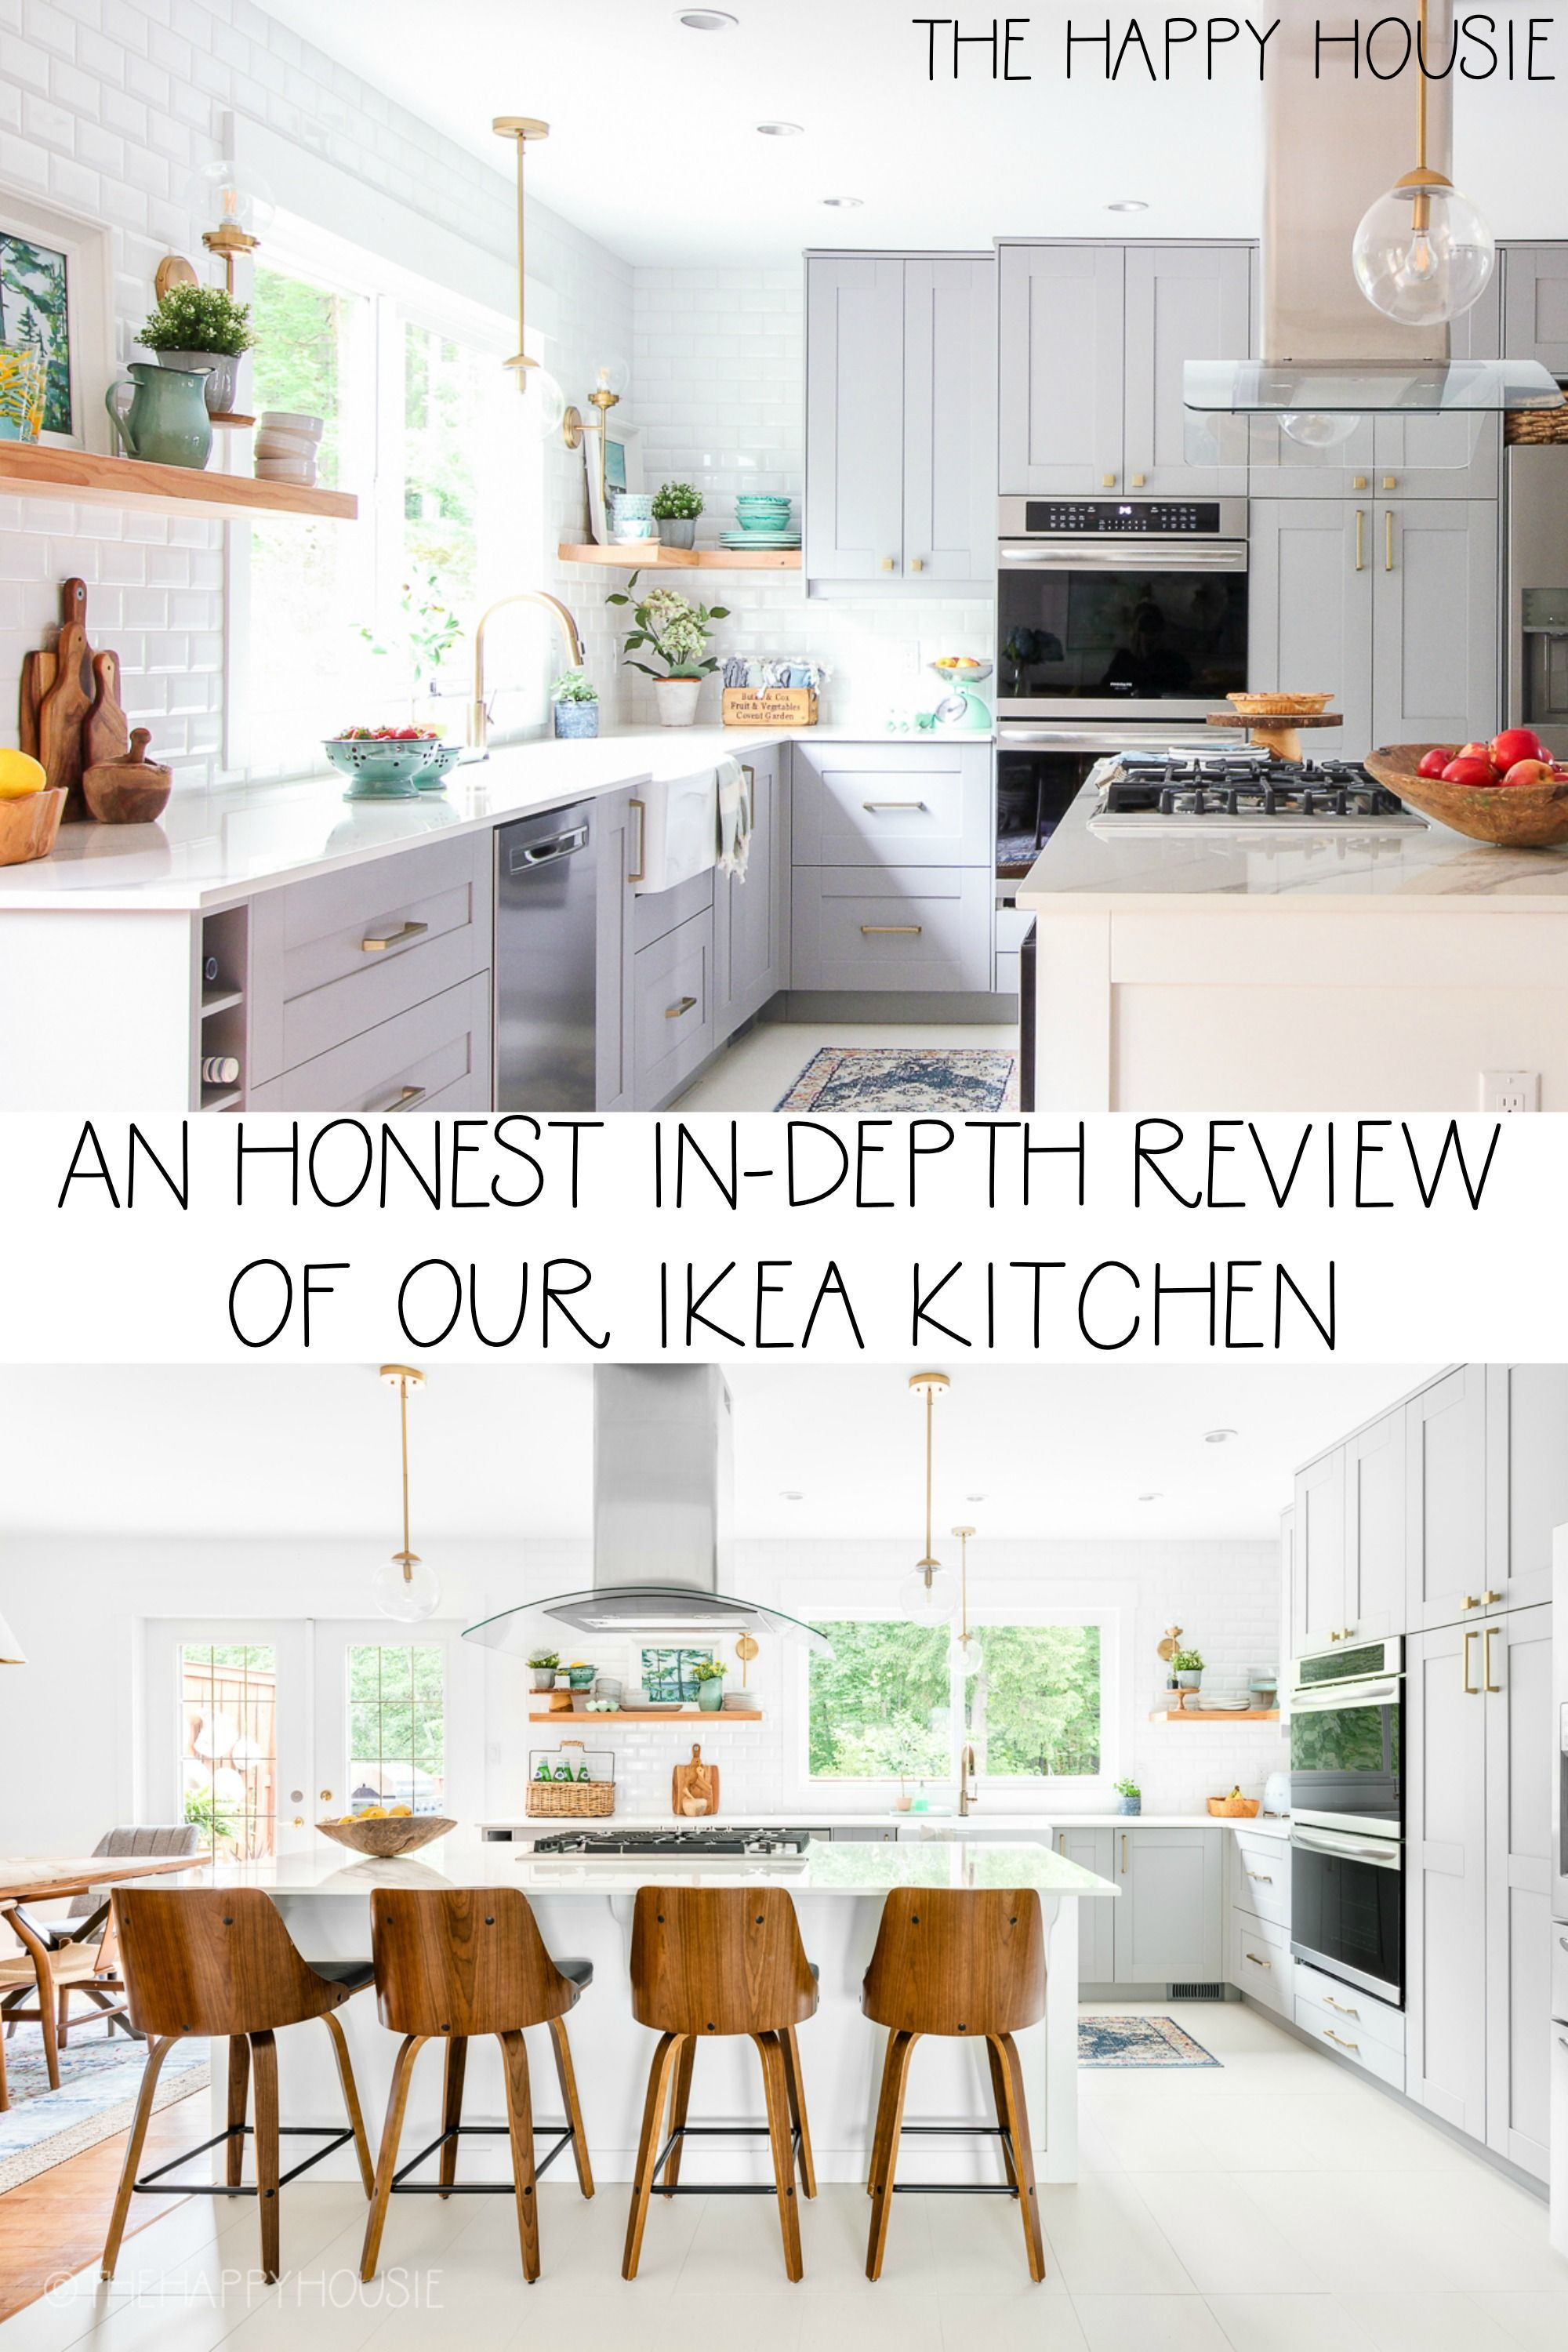 An Honest In Depth Review Of Our Ikea Kitchen The Happy Housie In 2020 Ikea Kitchen Kitchen Inspirations Kitchen Cabinet Door Styles